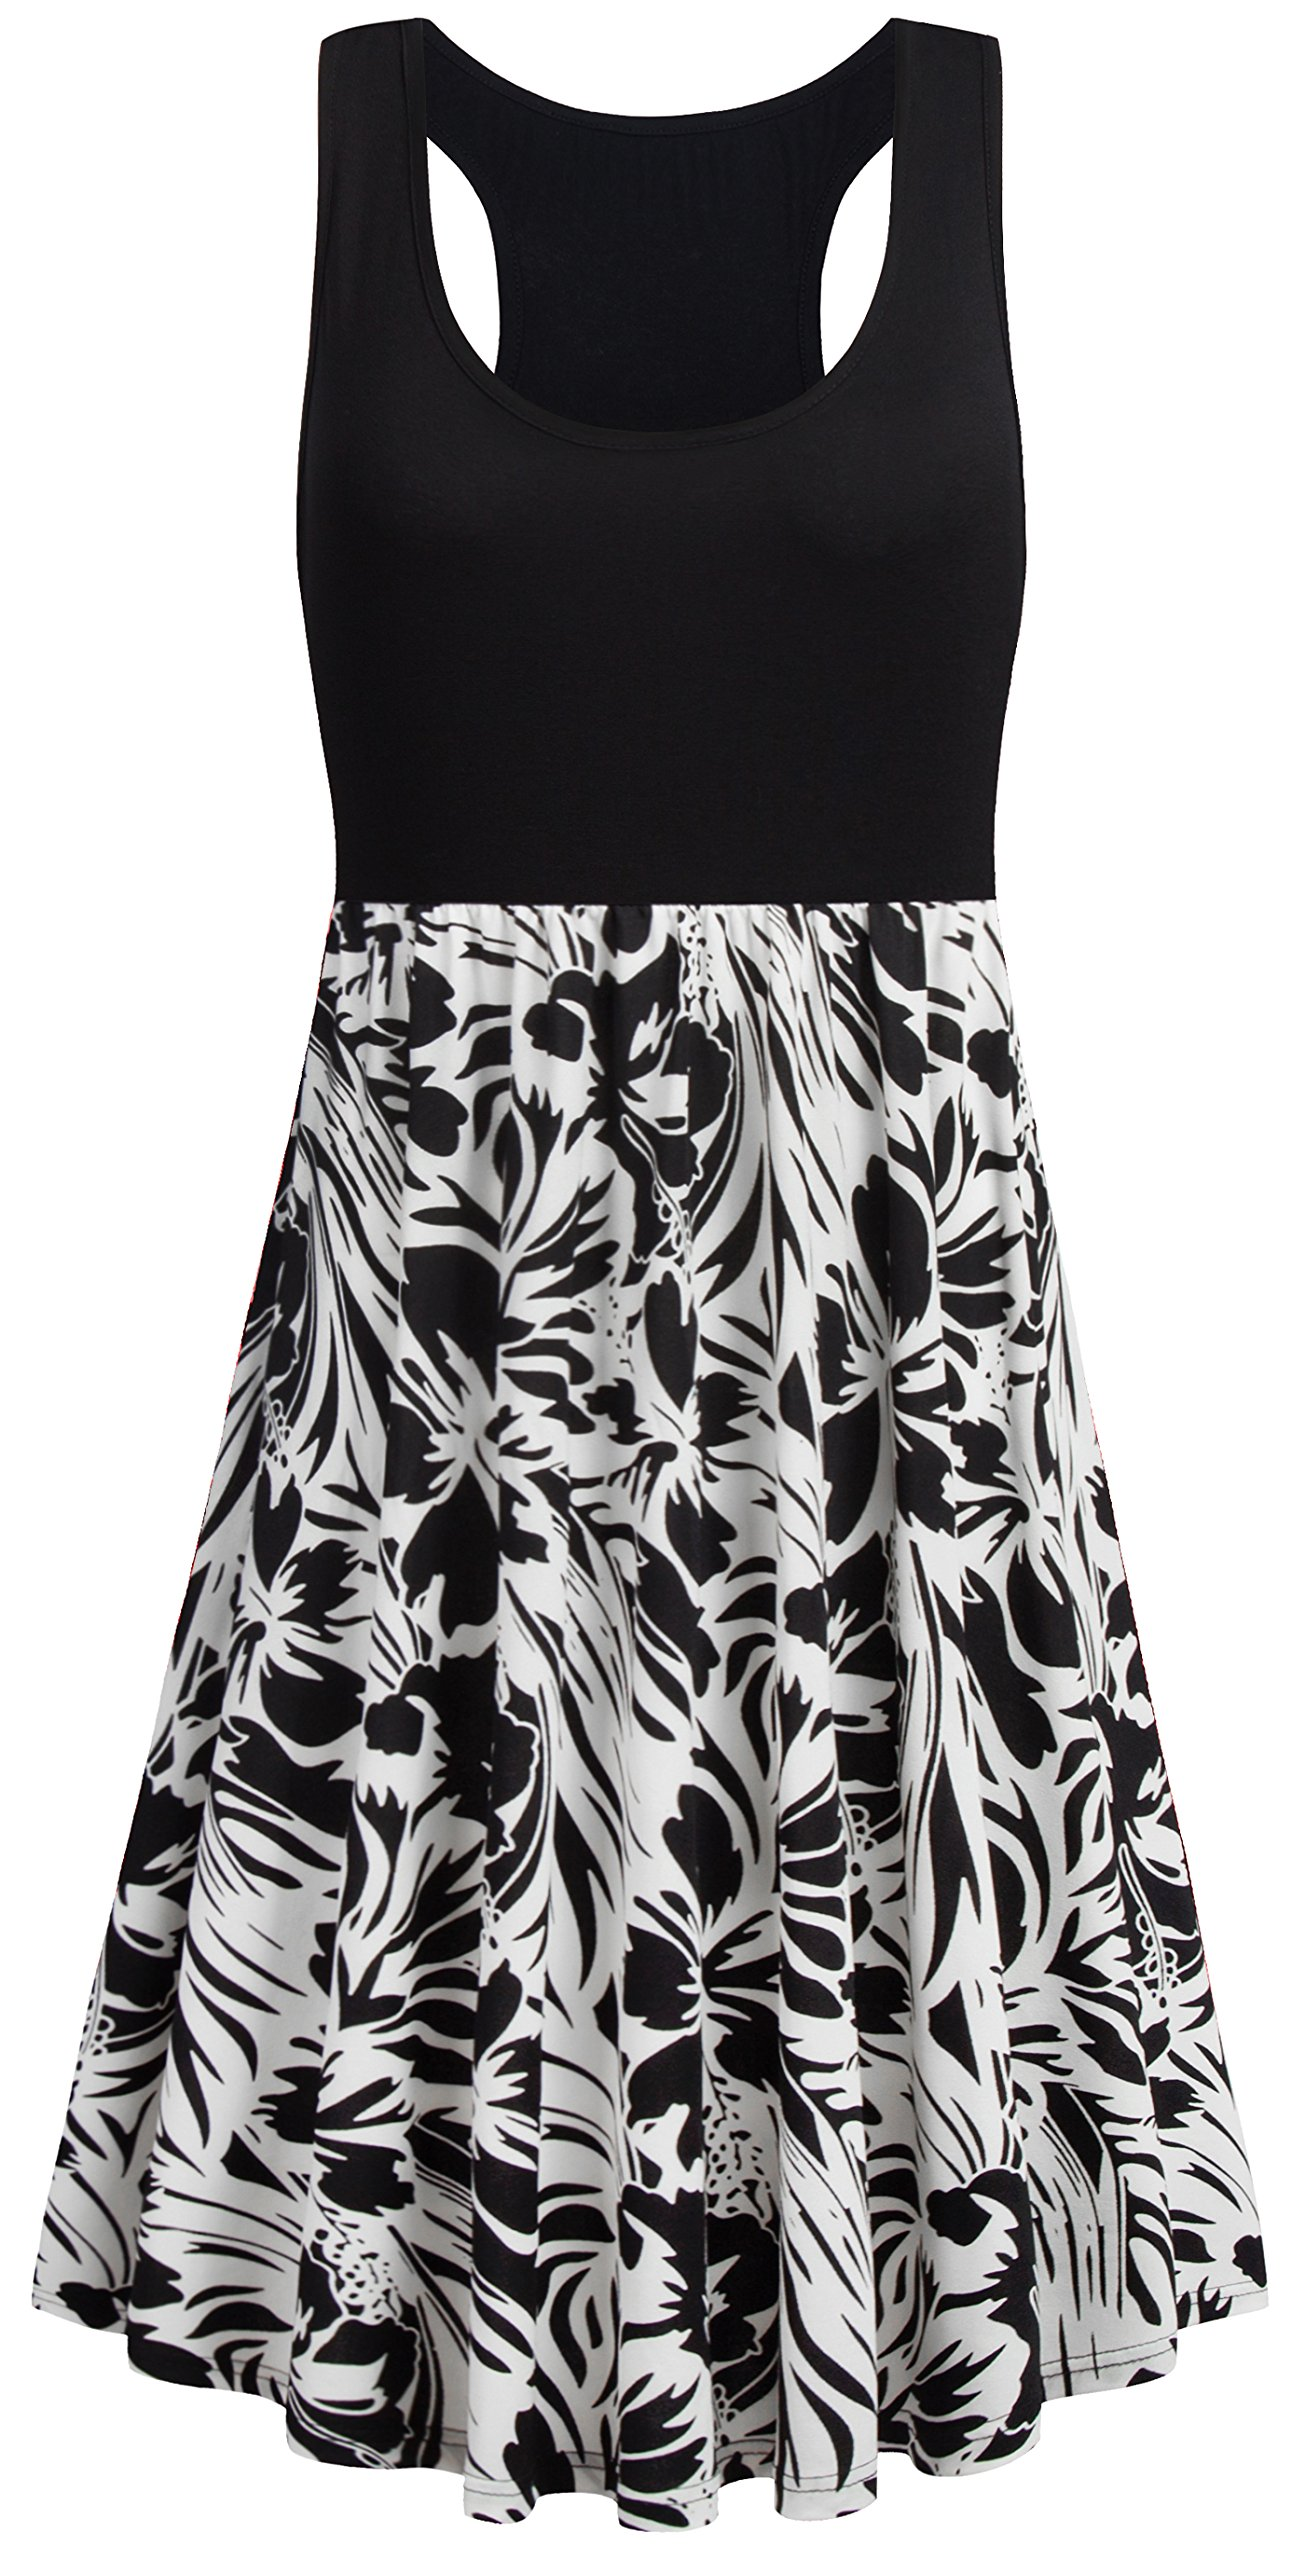 Nandashe Casual Dress with Pockets for Women, Teen Girls O Neck Boho Style Graphic Print Cool Thin Cold Shoulder Flattering Swing Tunic Midi Cami Dress Black White 1x Size 14